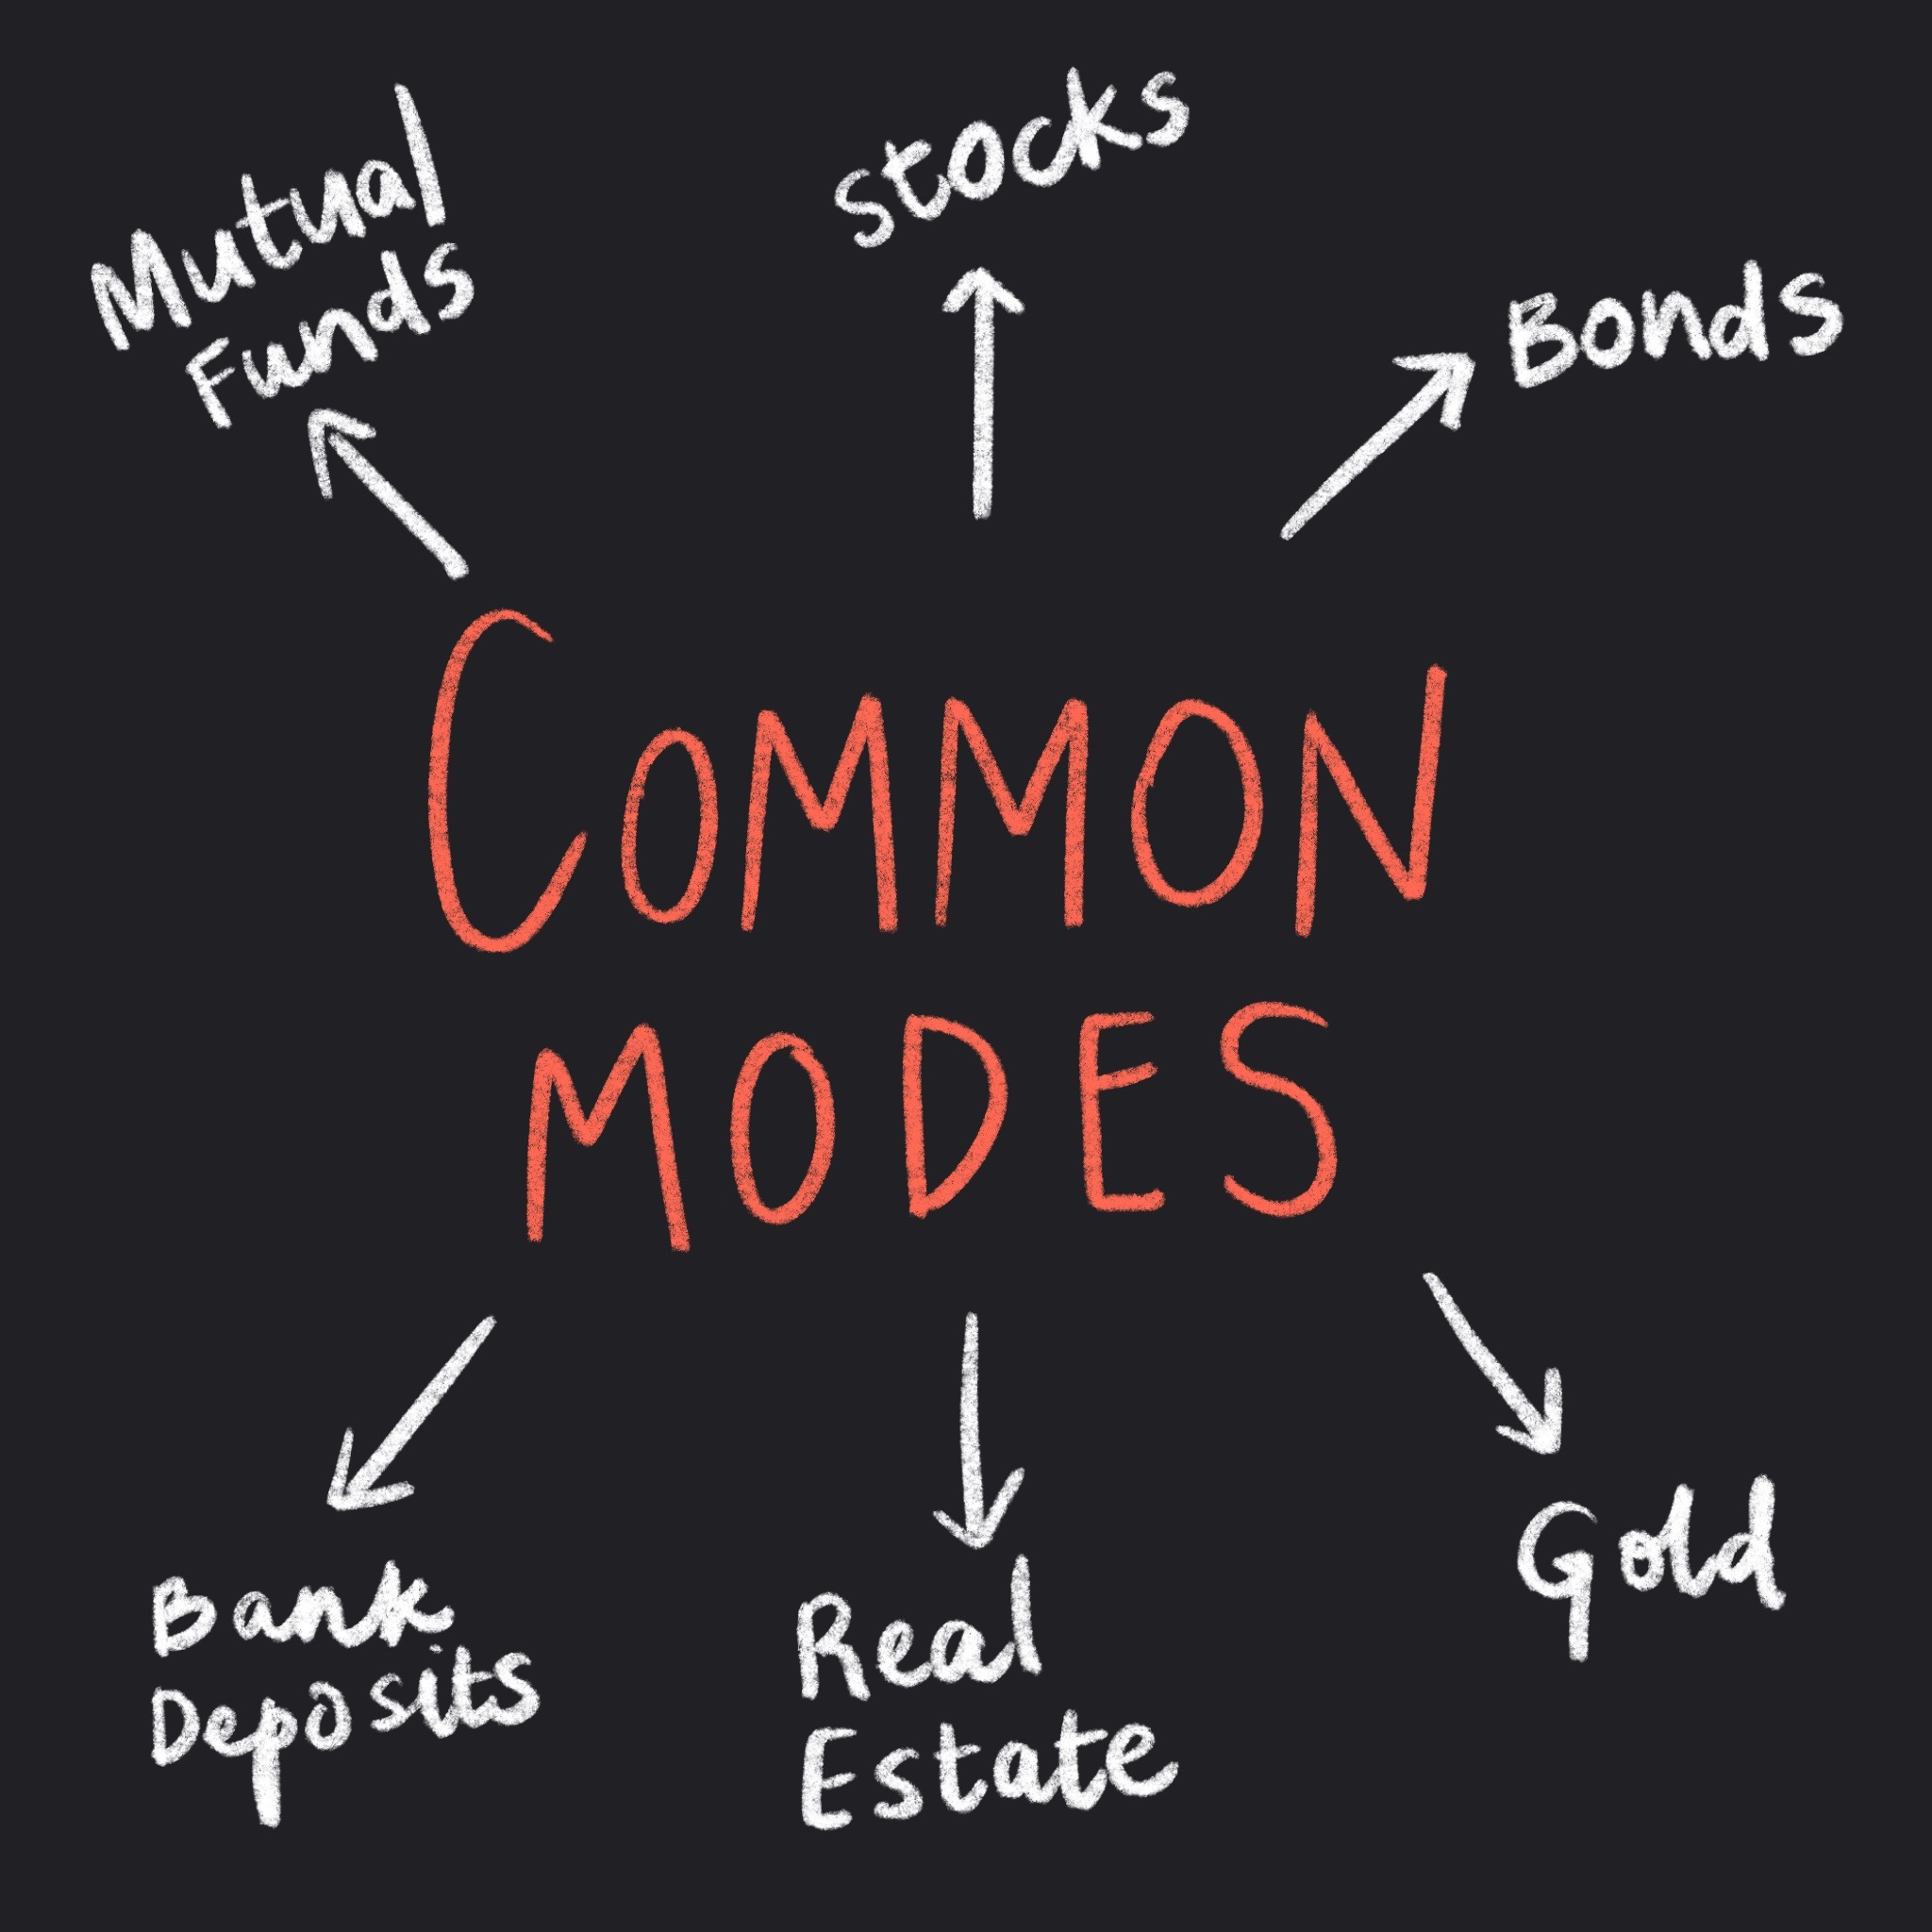 Common modes of investments